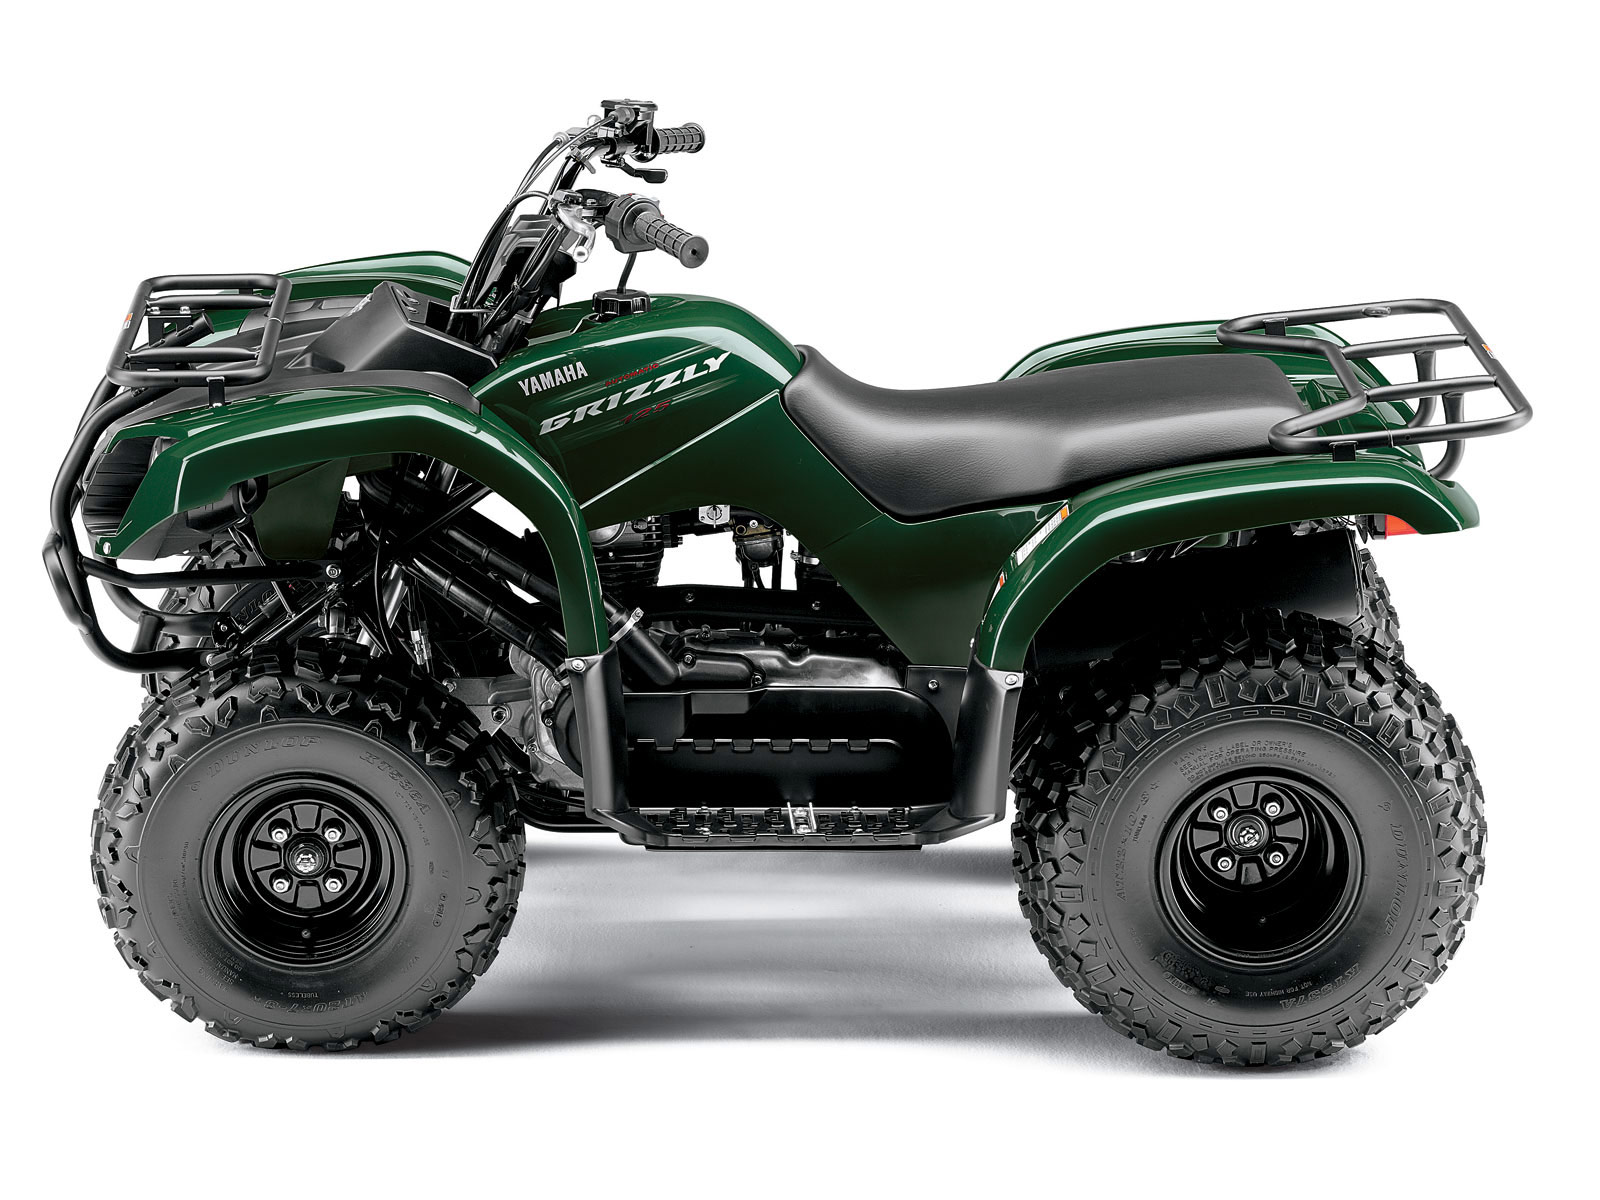 2011 yamaha grizzly 125 atv pictures super moto and sexy girls. Black Bedroom Furniture Sets. Home Design Ideas